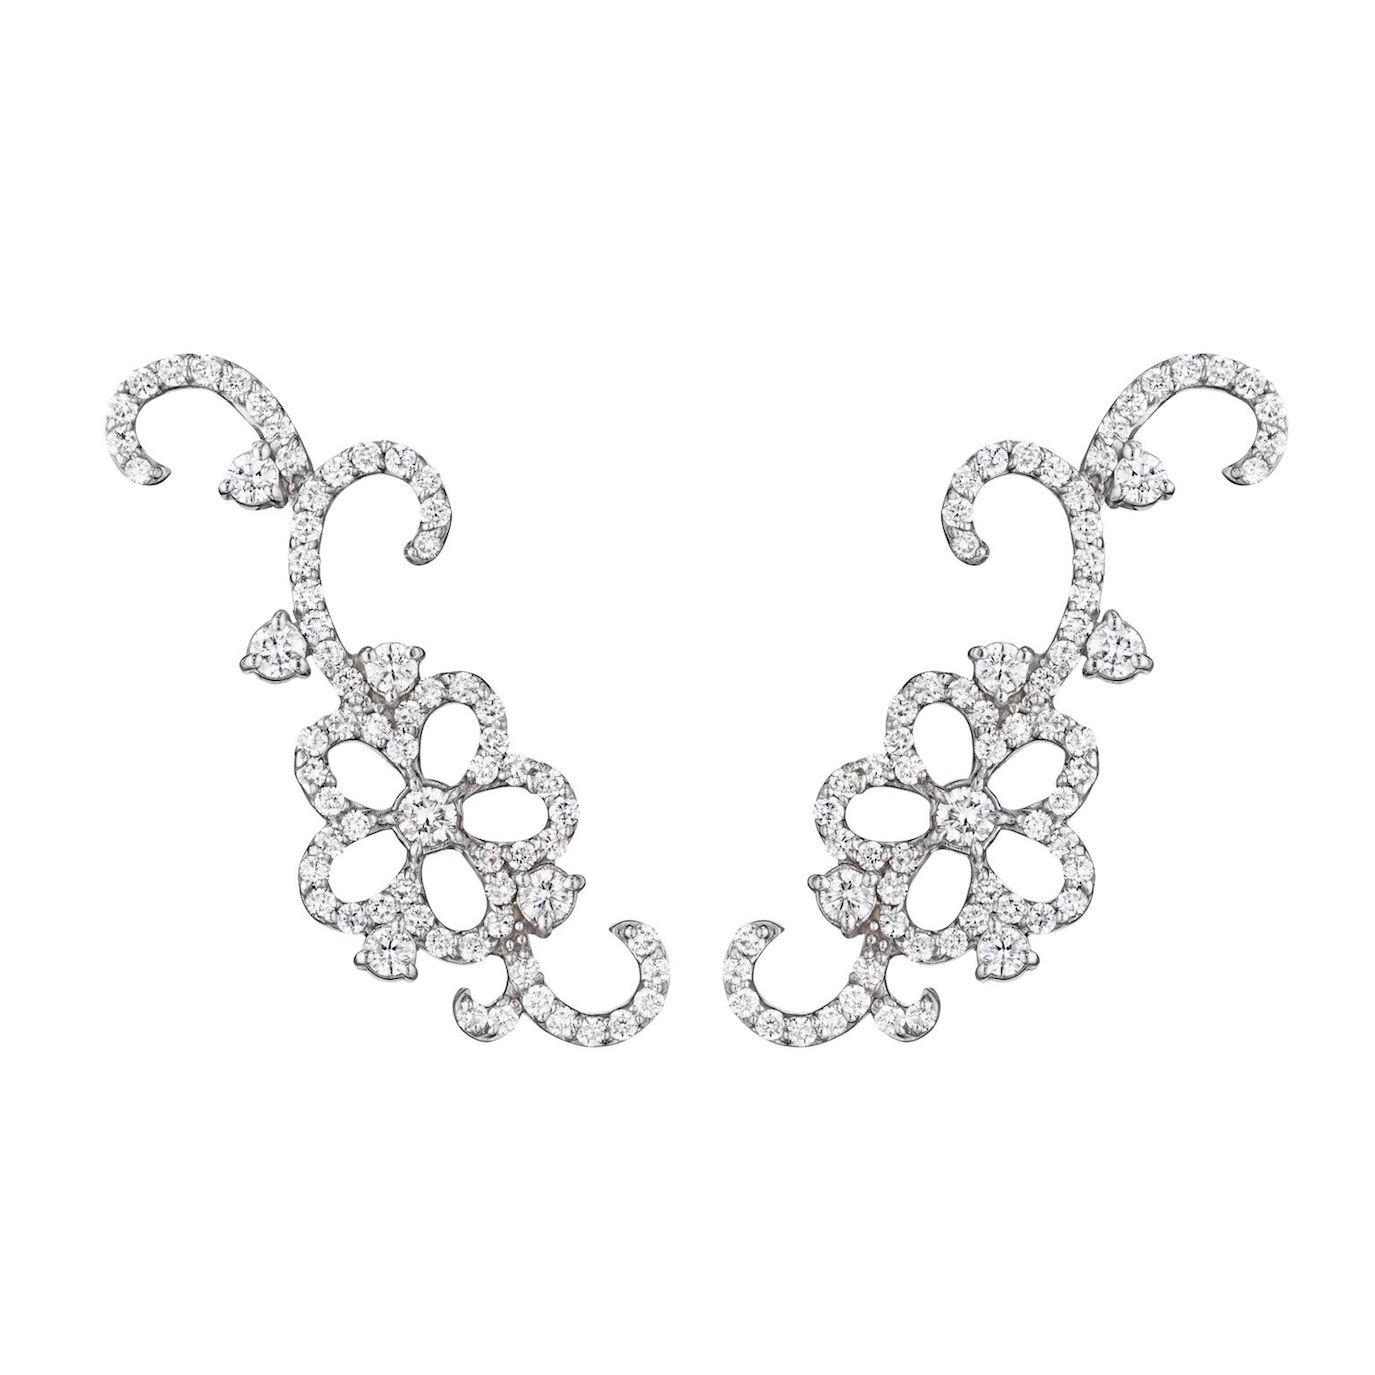 Penny Preville enchanted garland ear cuffs can be found at Shreve & Co